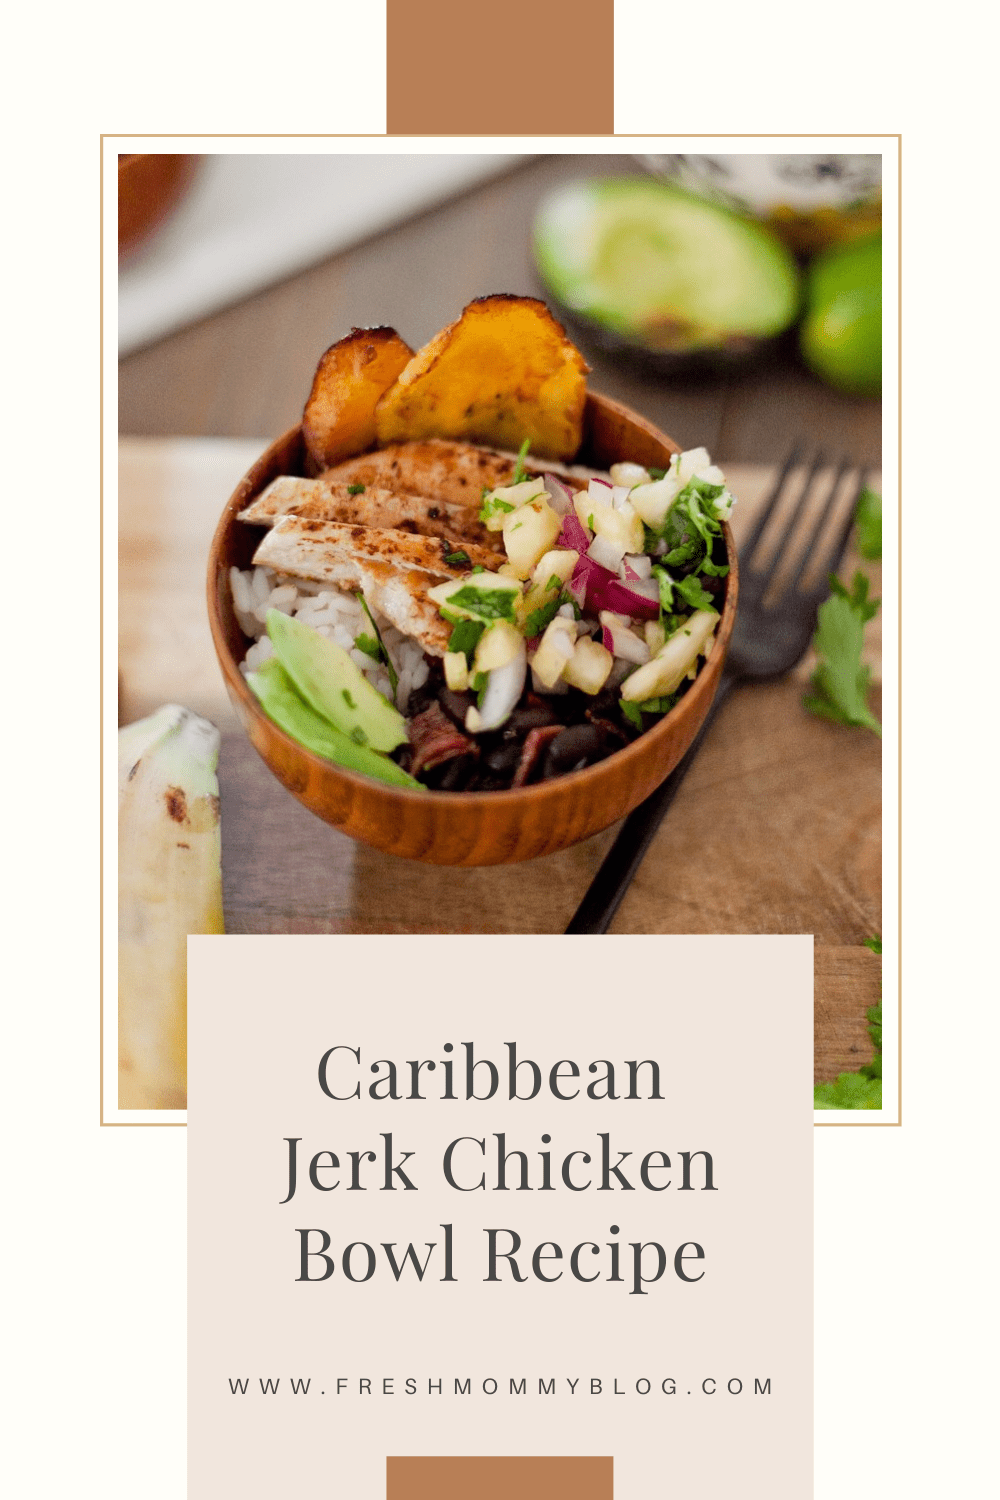 Caribbean Jerk Chicken Bowl with Pineapple Salsa and Fried Plantains for a flavorful dinner recipe idea featured by popular Florida foodie blogger, Tabitha Blue of Fresh Mommy Blog   Caribbean Jerk Chicken by popular Florida lifestyle blog, Fresh Mommy Blog: Pinterest image of a Caribbean jerk chicken bowl  in a wooden bowl next to a black metal fork.